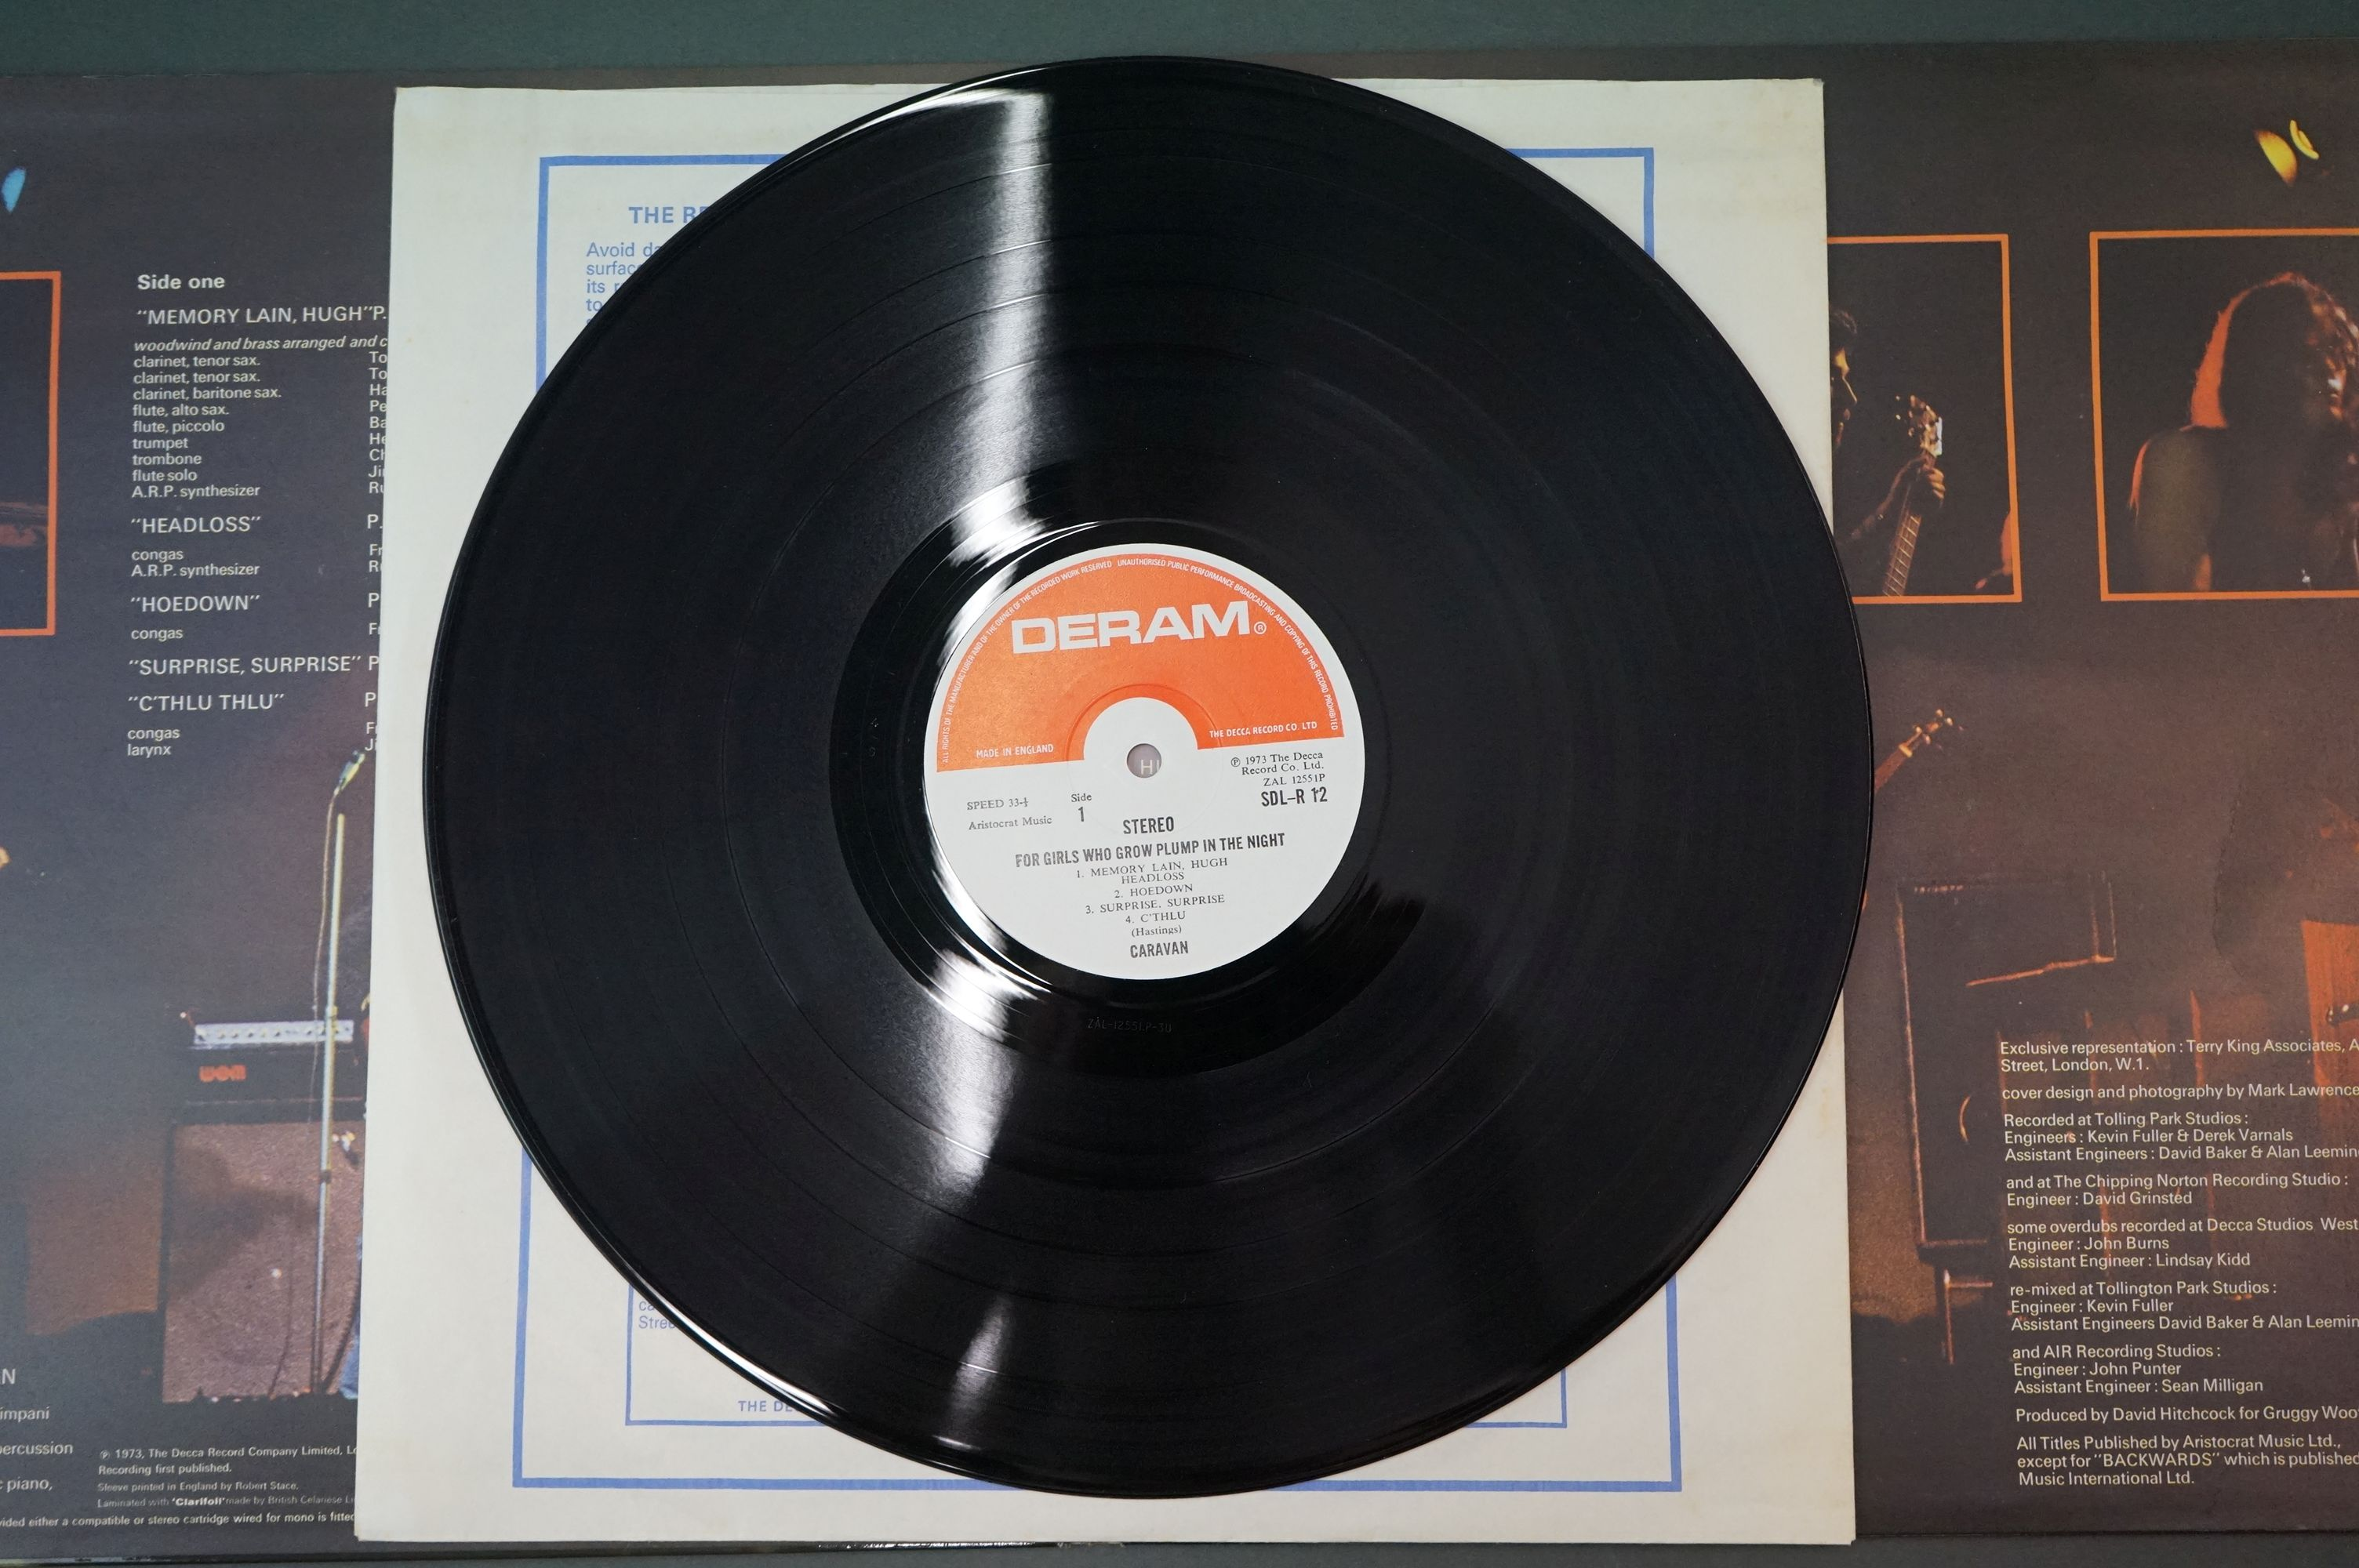 Vinyl - Caravan, For Girls Who Grow Plump in the Night LP on Deram SDLR12 red/white label, - Image 4 of 6